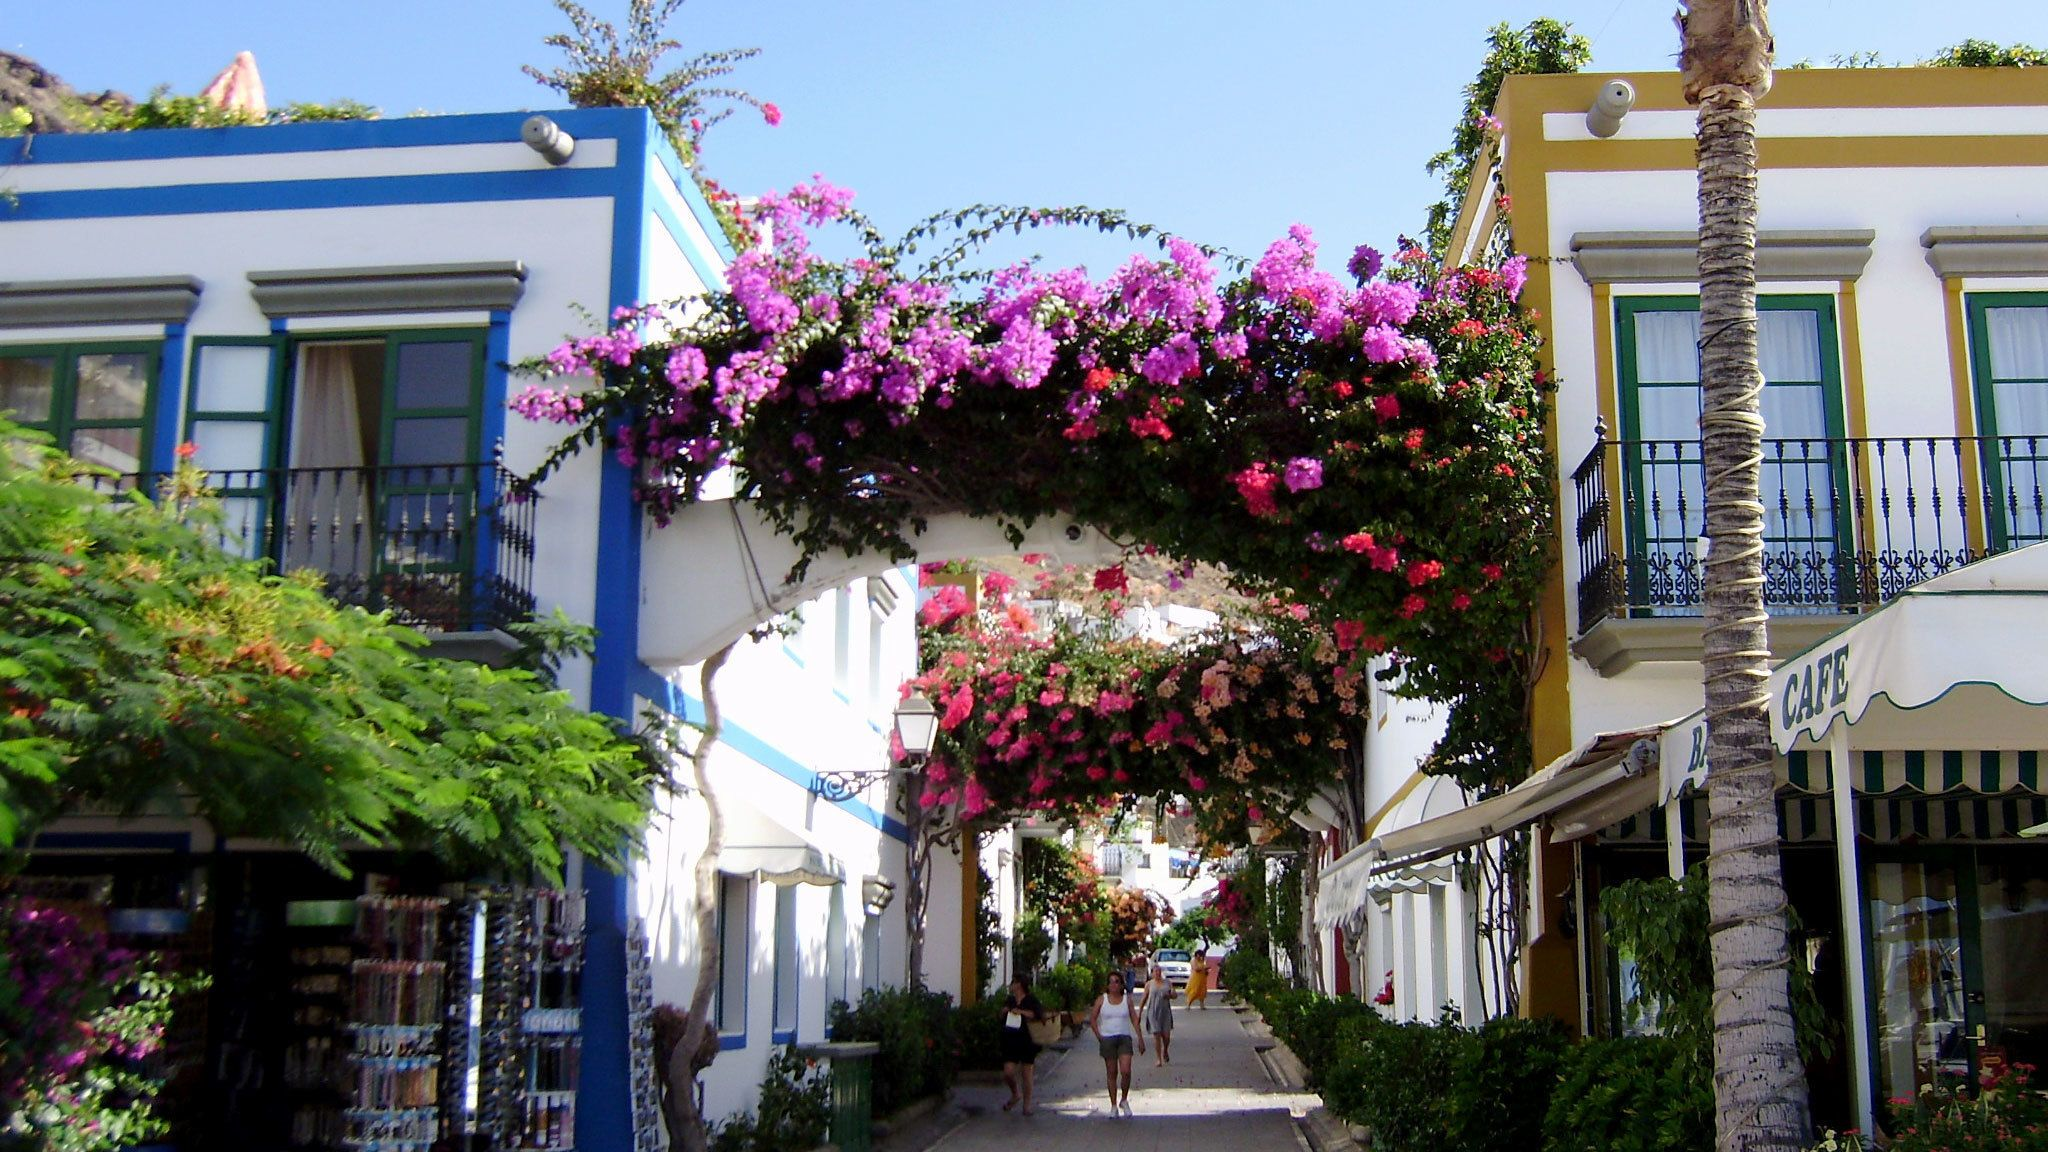 Flower-covered arches over a walkway between buildings in Gran Canaria